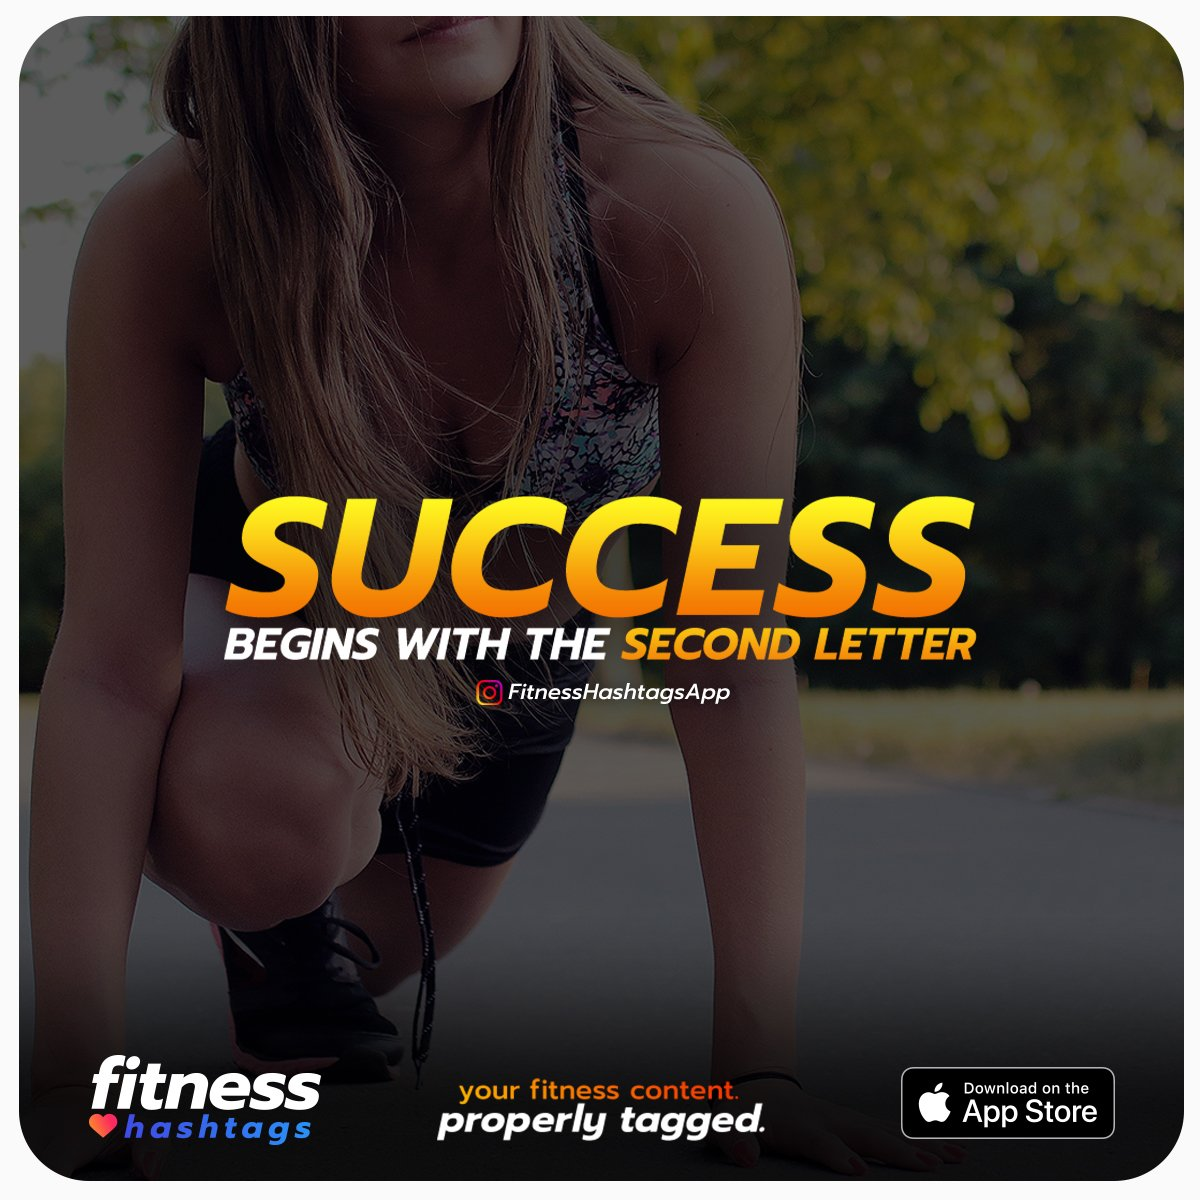 SUCCESS begins with the SECOND LETTER.  Tag your #fitness content in HALF the time. Free on the App Store!  💪➡️http://apple.co/2x6phgR⬅️💪  #Exercise #Workout #Gym #GymTime #Exercising #Fit #GymGrind #FitLife #Lift #WorkoutMonday #MondayMotivation #MondayMorning #MondayVibes